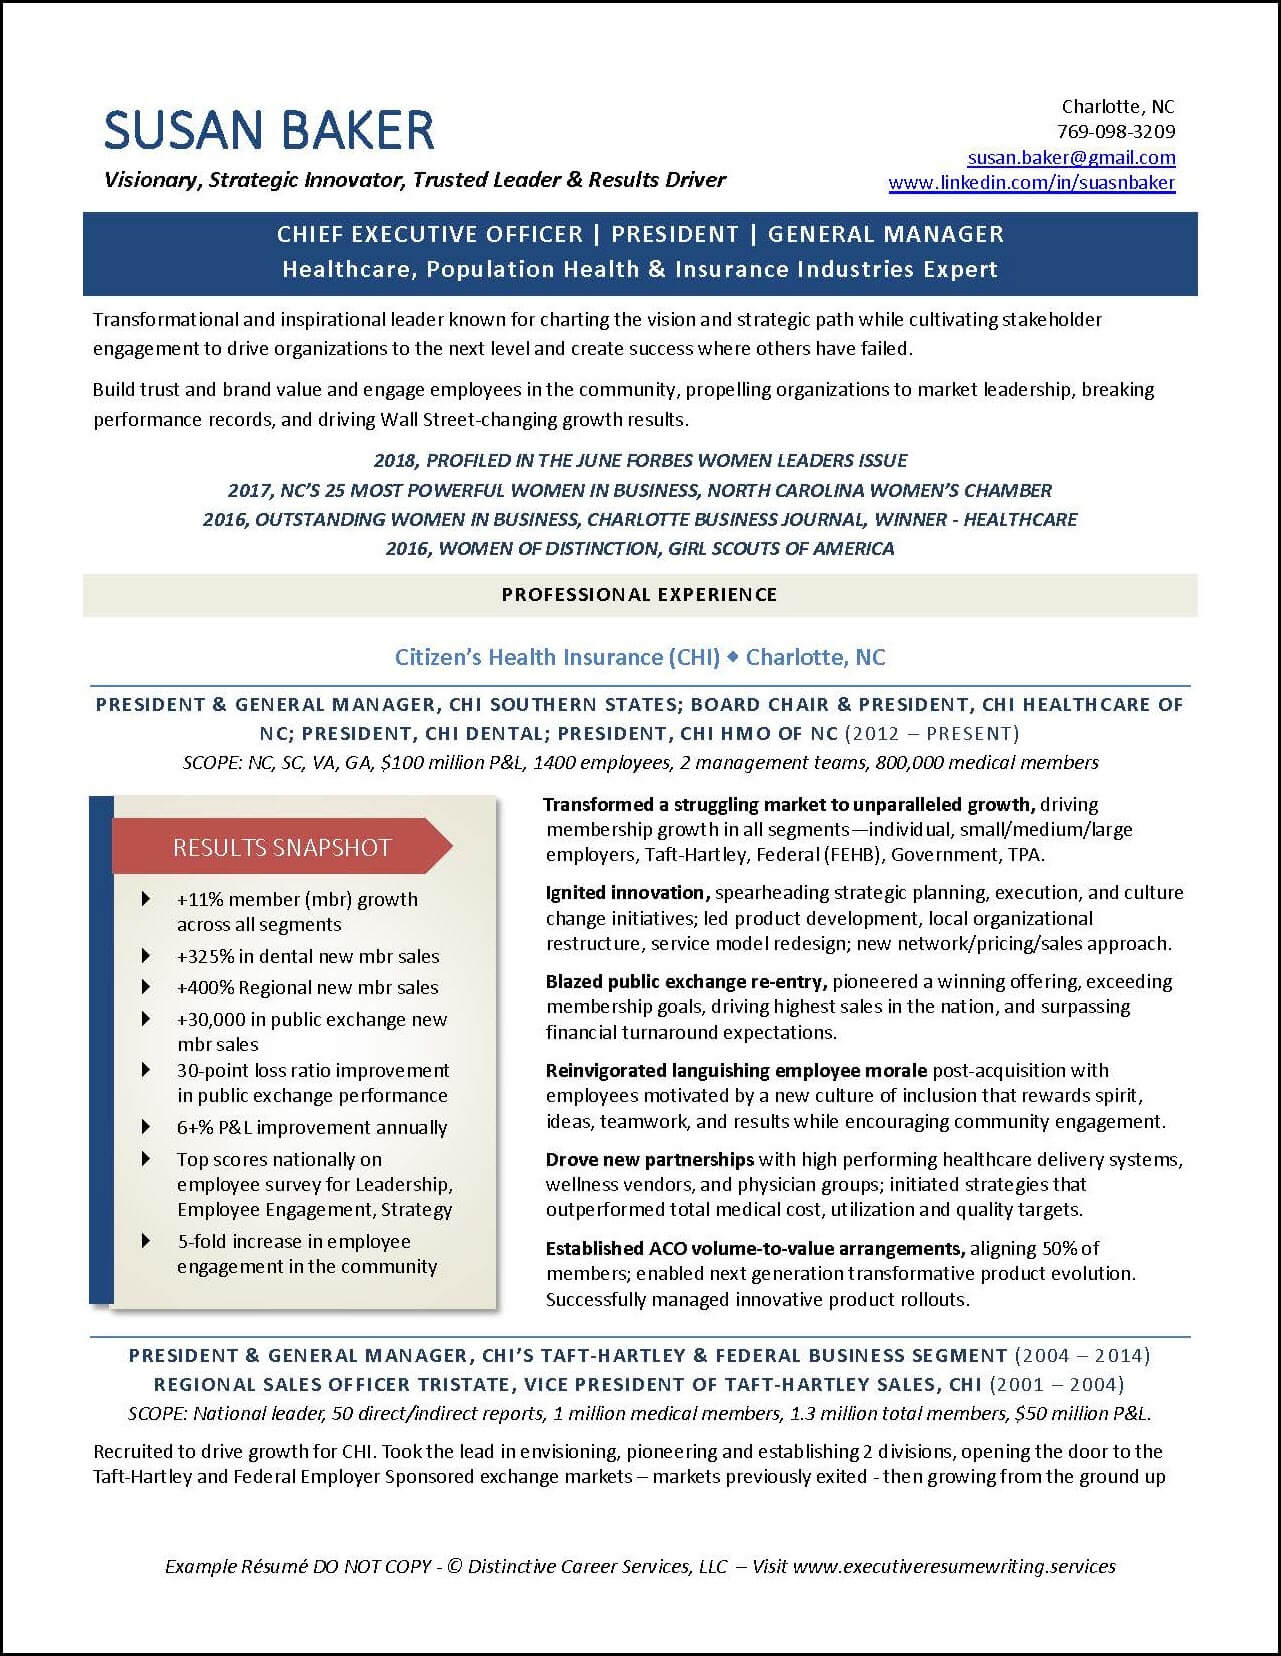 Example CEO-President-GM Executive Resume pg 1